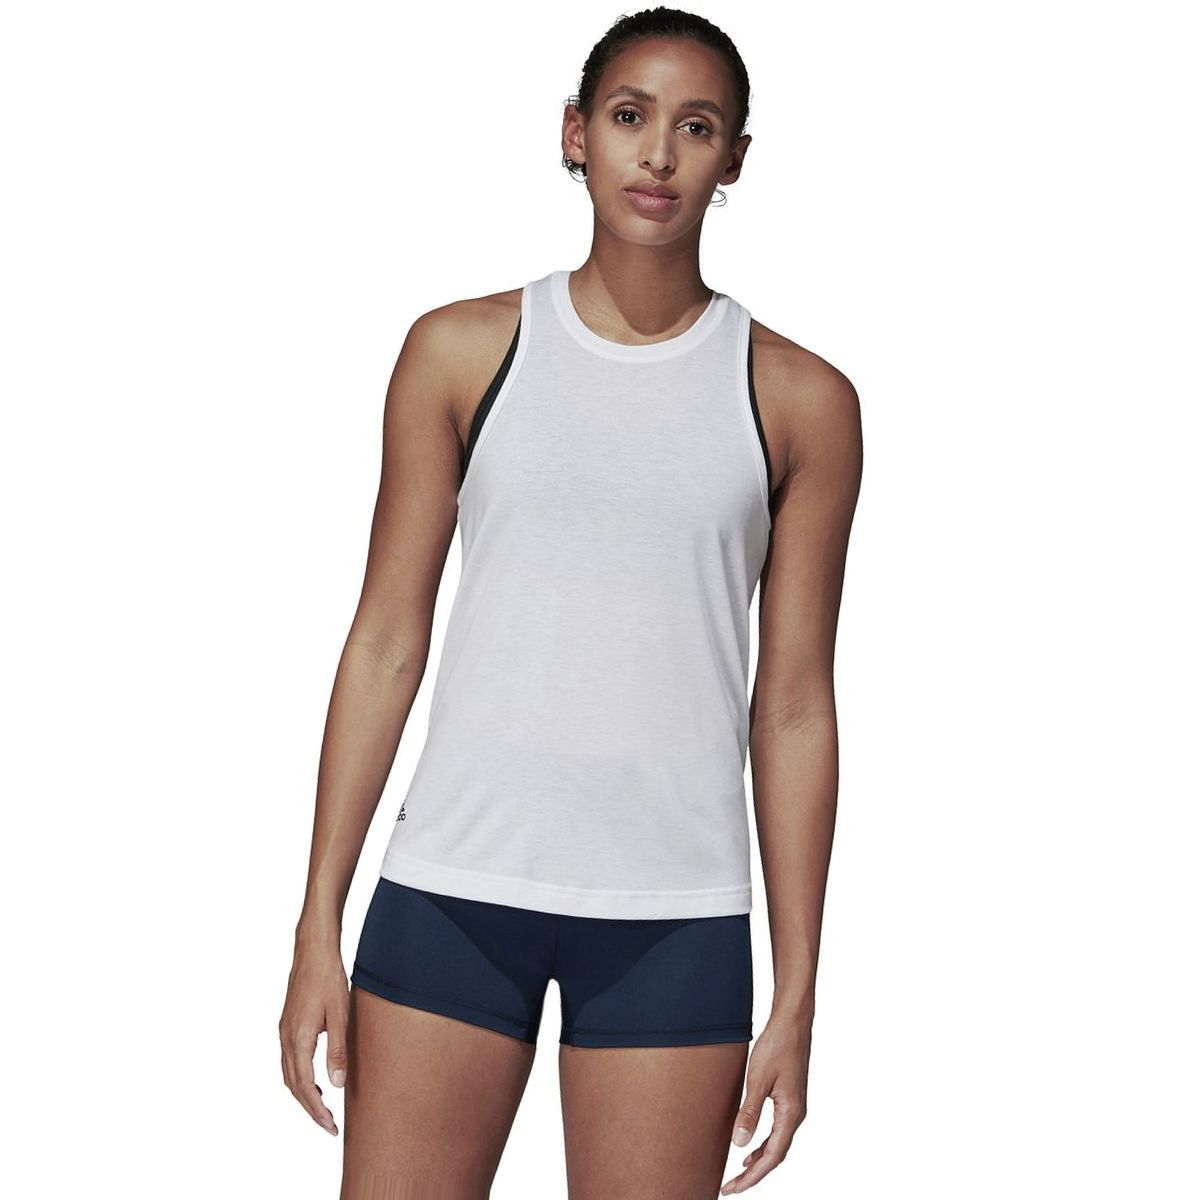 Adidas Outdoor Cool Tank Top - Women's